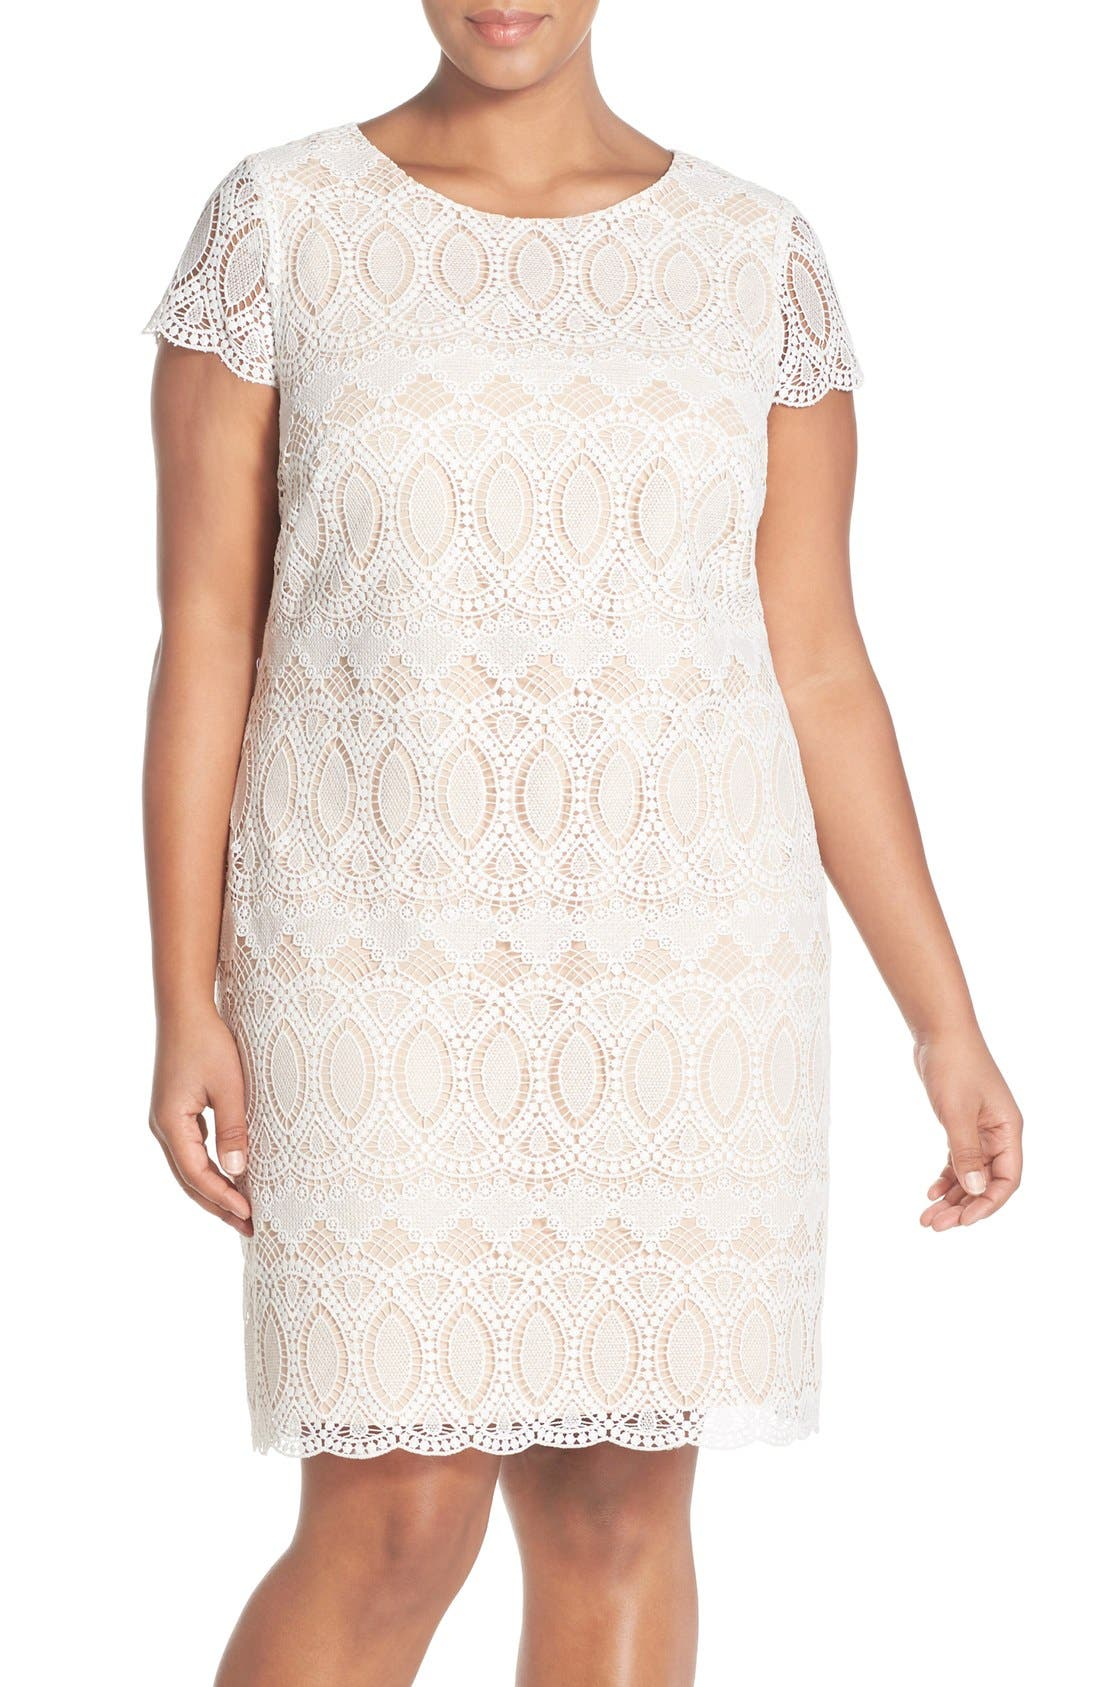 Alternate Image 1 Selected - Eliza J Cap Sleeve Lace Shift Dress (Plus Size)